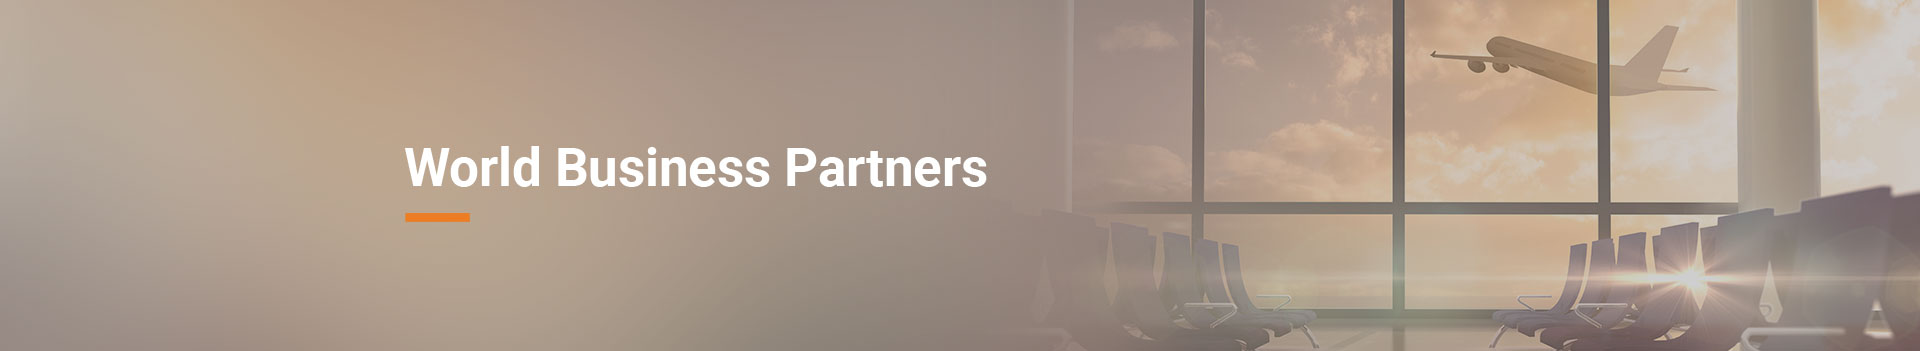 WBP Affiliate Members - slide world business partners